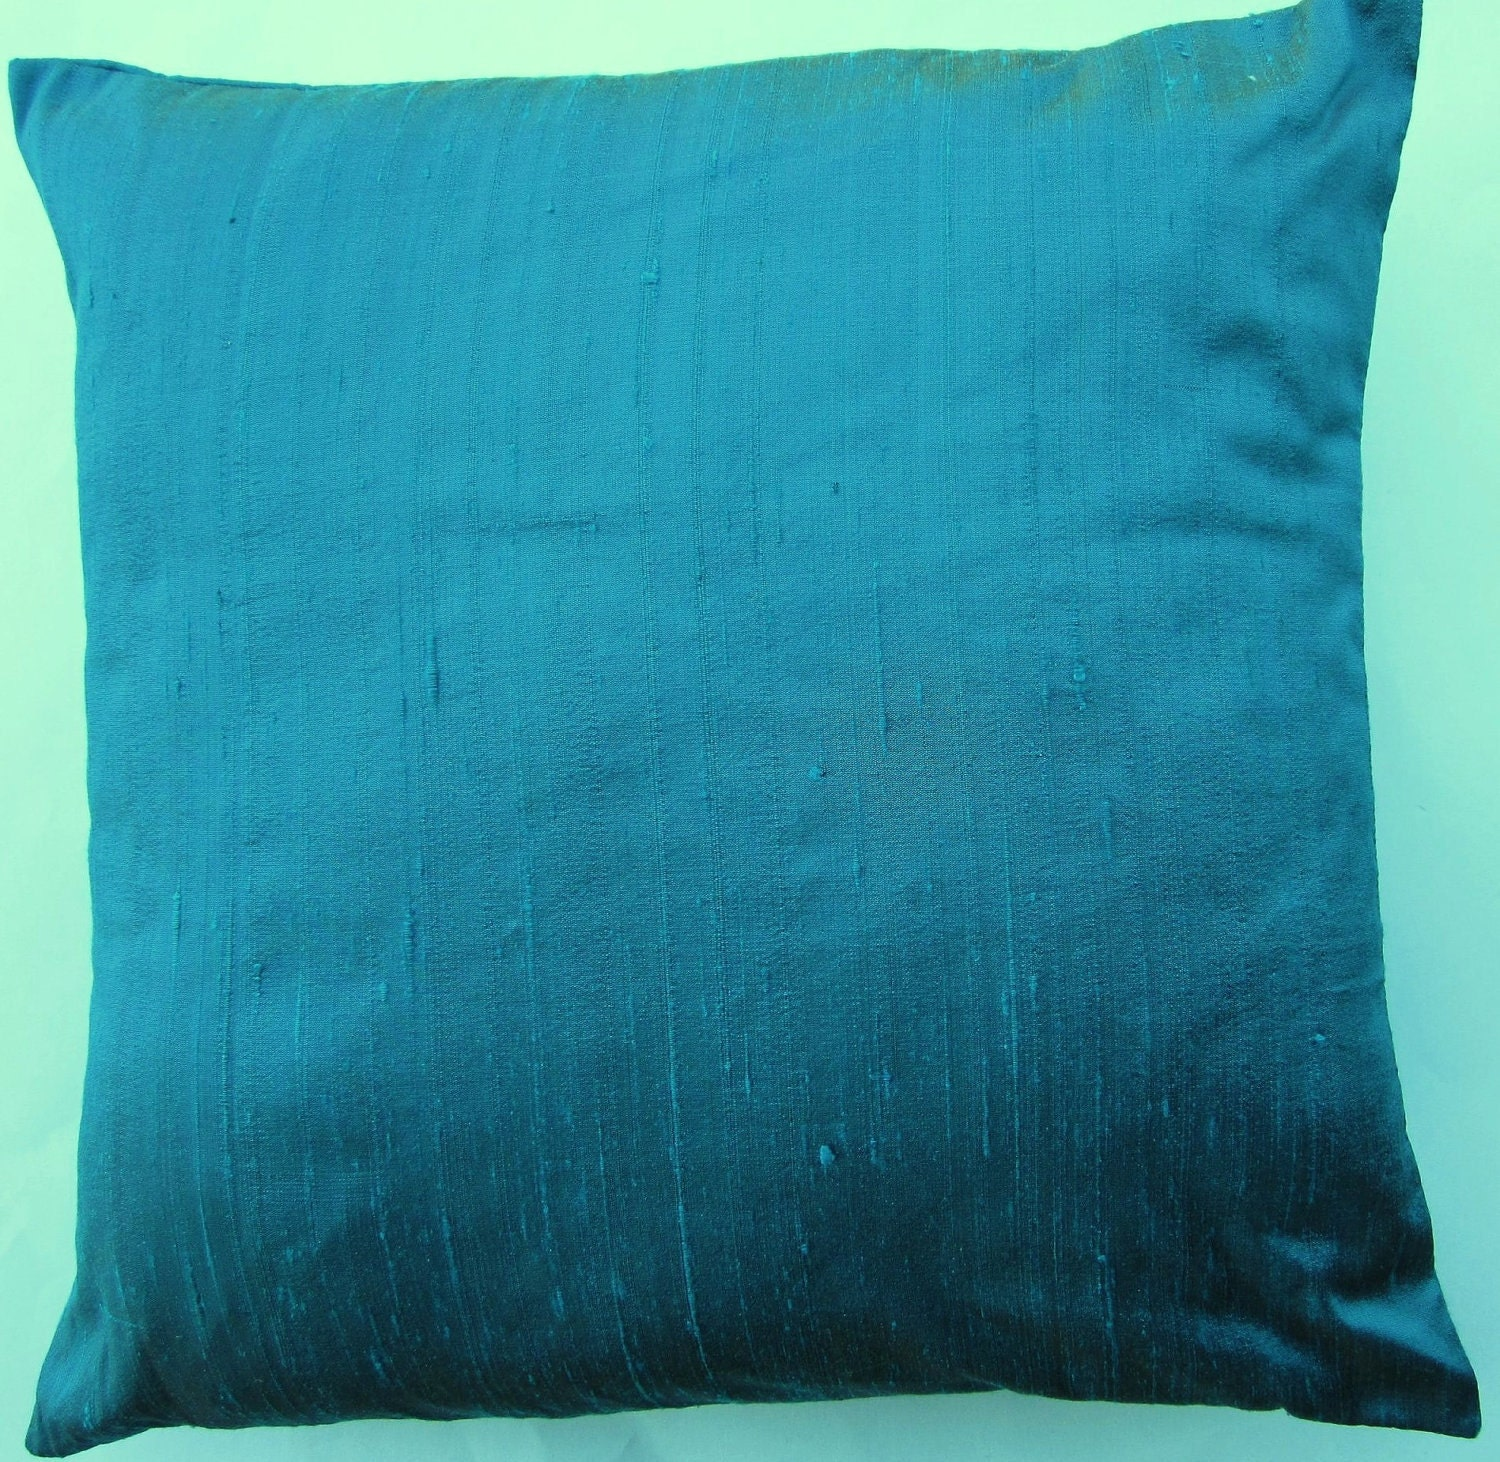 Peacock Blue Throw Pillow : Turquoise Throw Pillow Silk Peacock Blue Cushion Cover 16